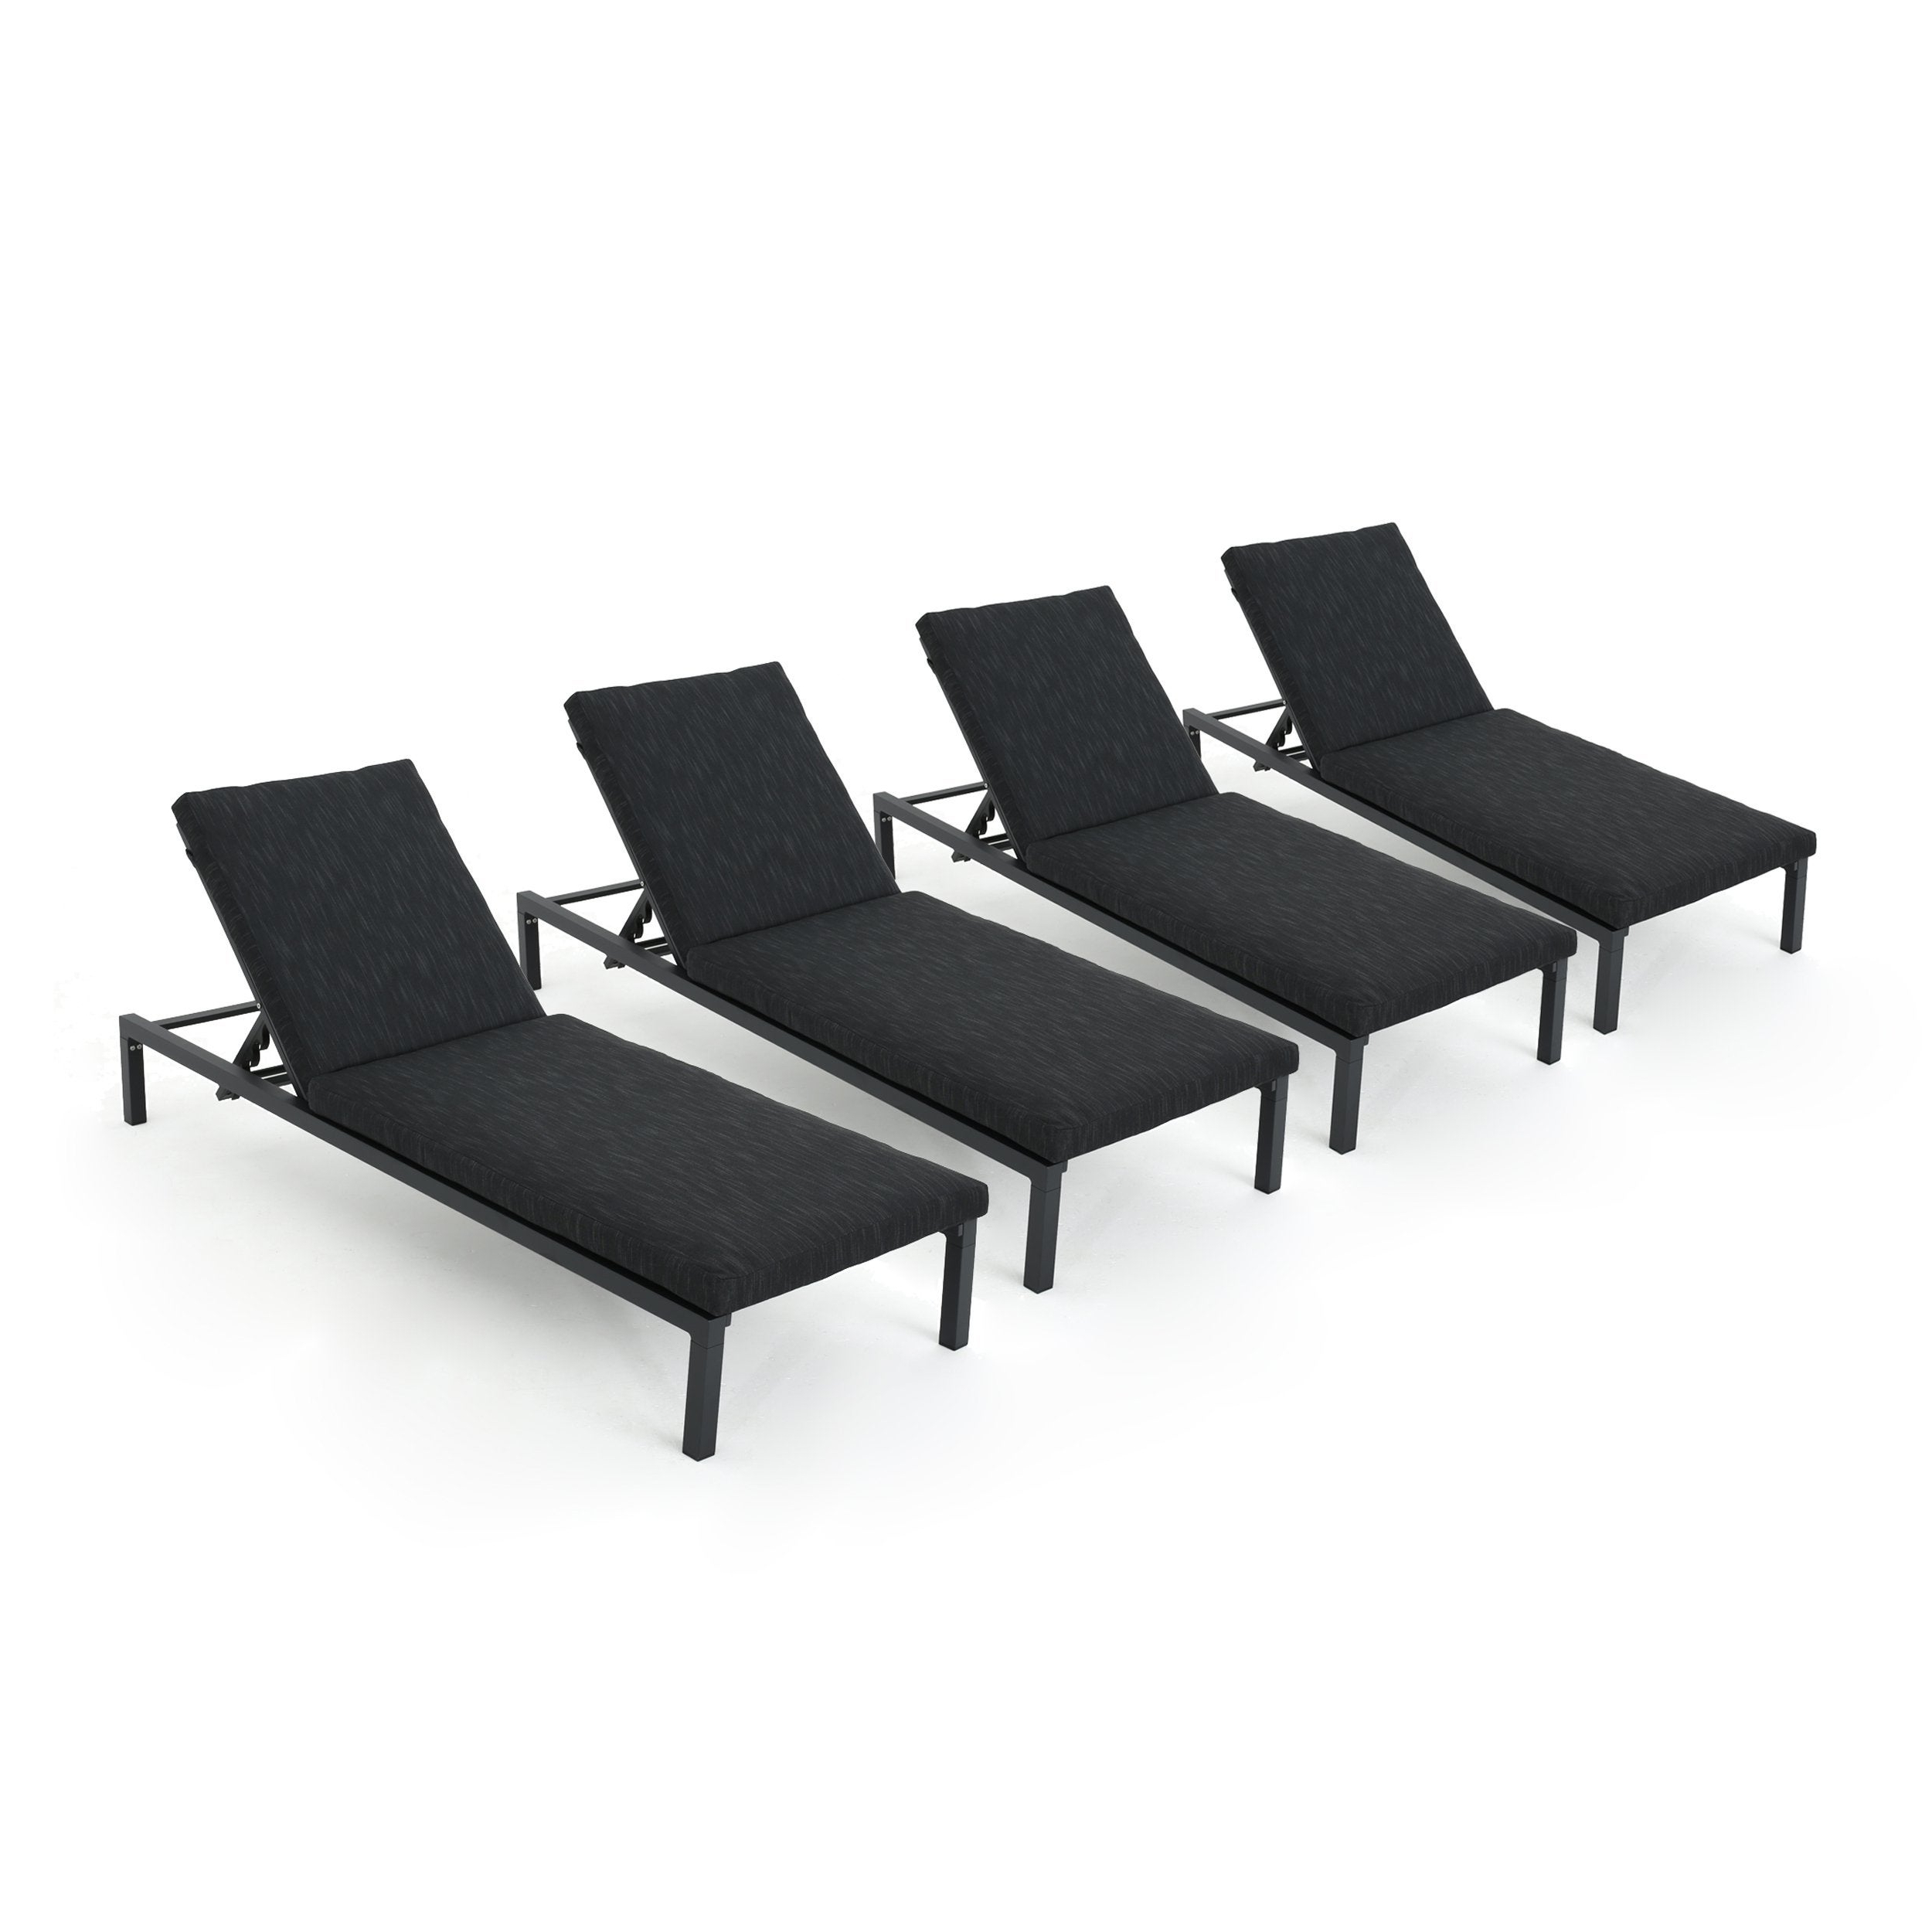 Navan Outdoor Aluminum Chaise Lounges With Cushion Within Fashionable Navan Outdoor Aluminum Chaise Lounge With Cushion (set Of 4)christopher Knight Home (View 2 of 25)